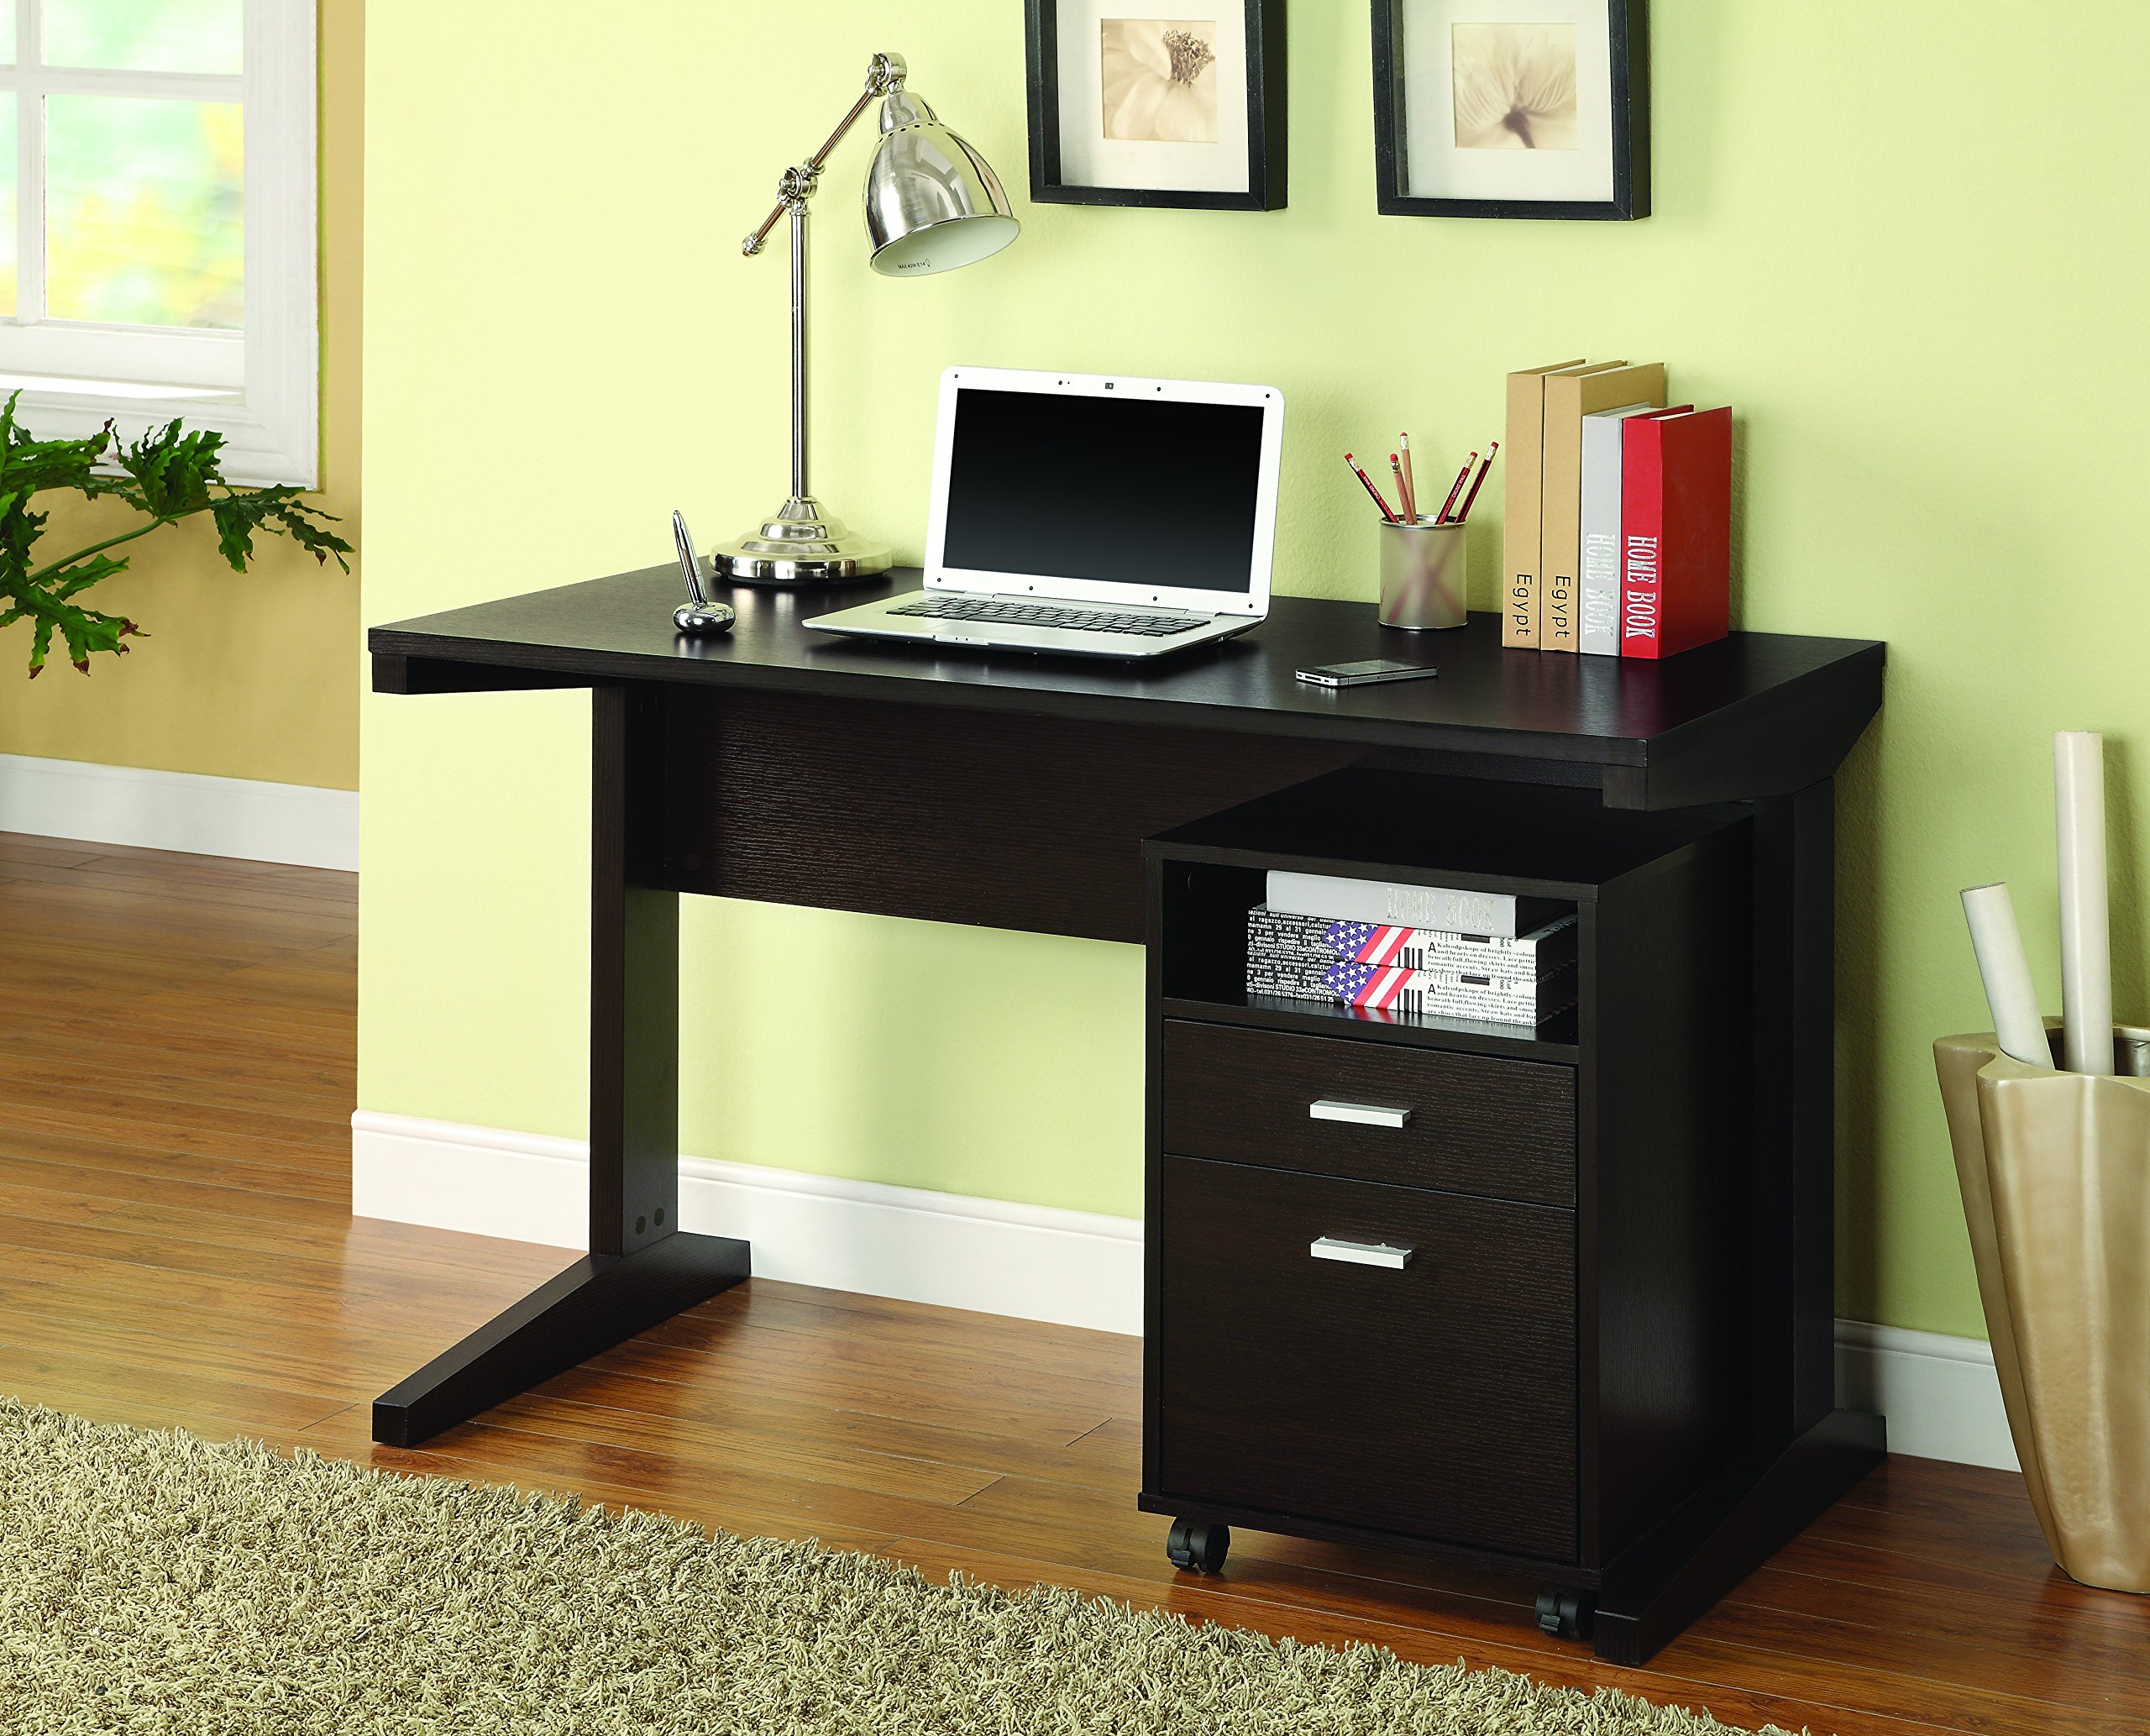 2-Piece Writing Desk Set with Rolling File Cabinet Cappuccino by Coaster Home Furnishings